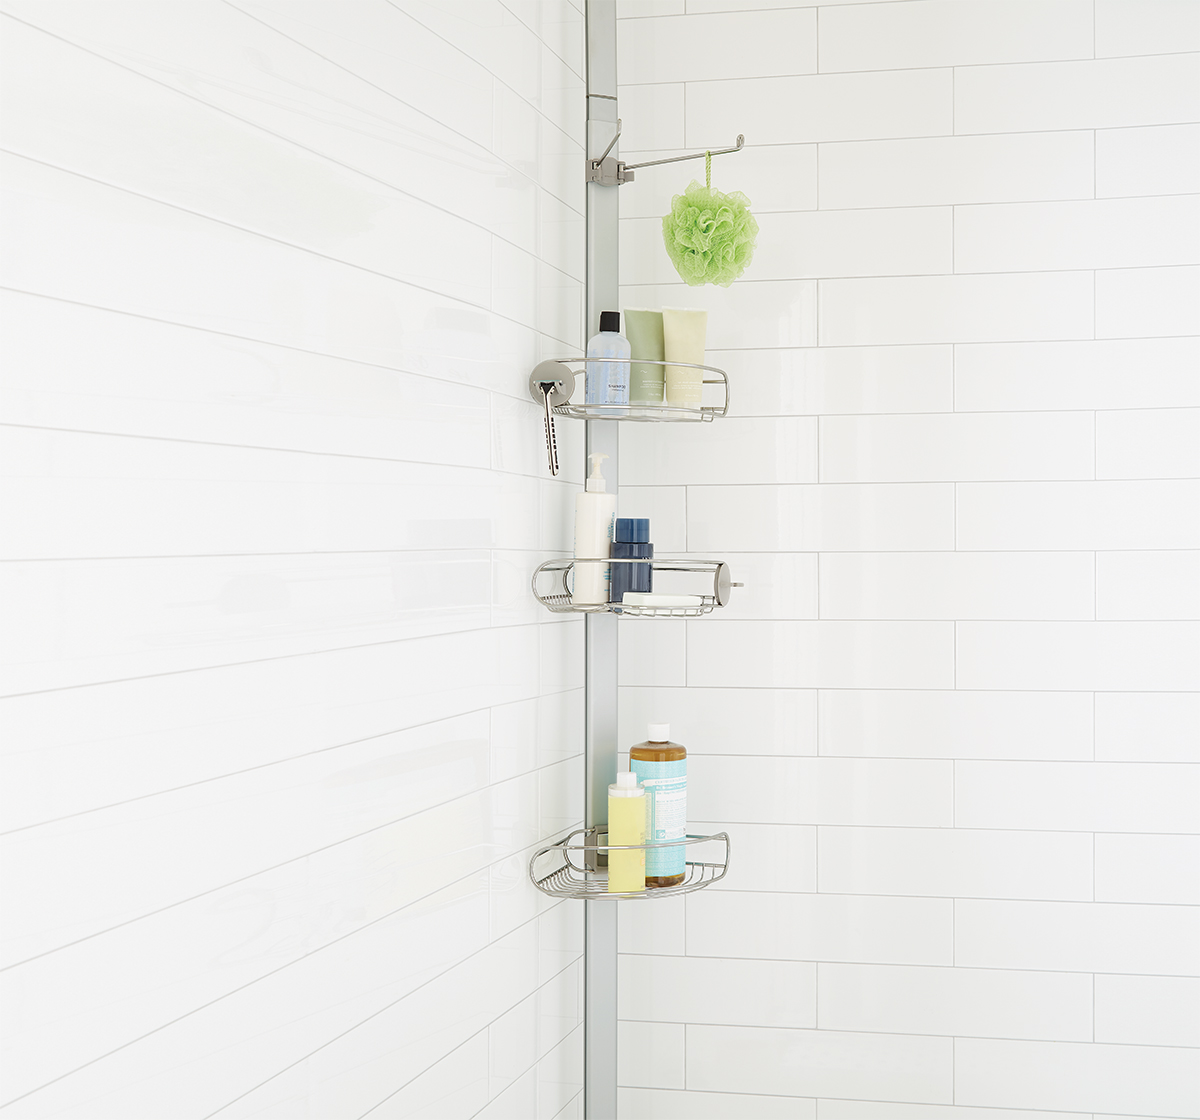 Charmant Stainless Steel Tension Pole Shower Caddy ...